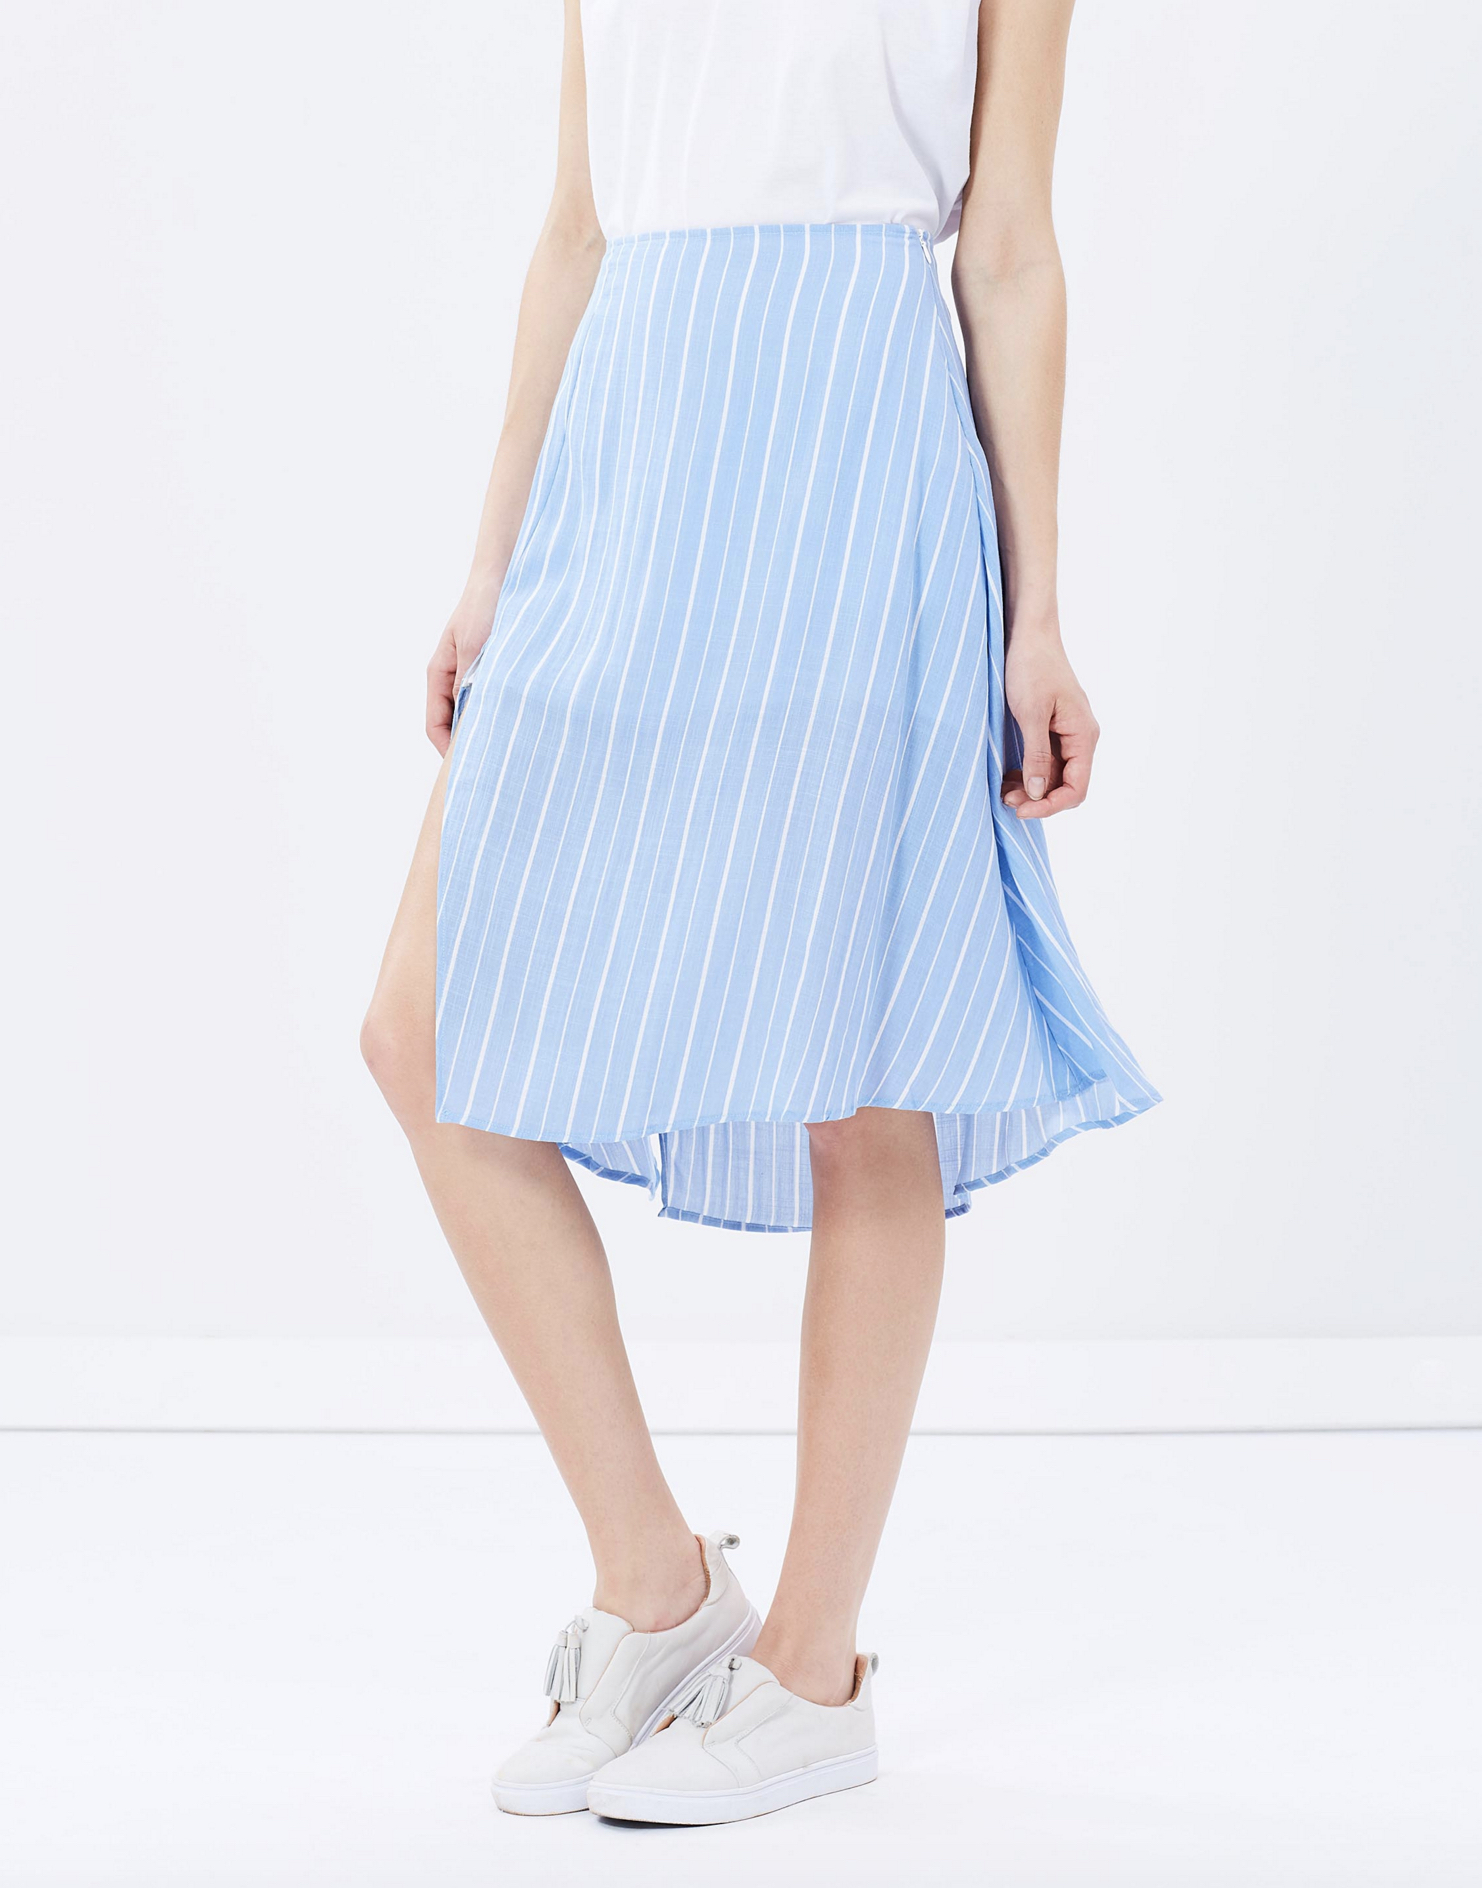 Staple the Label striped skirt $89.95